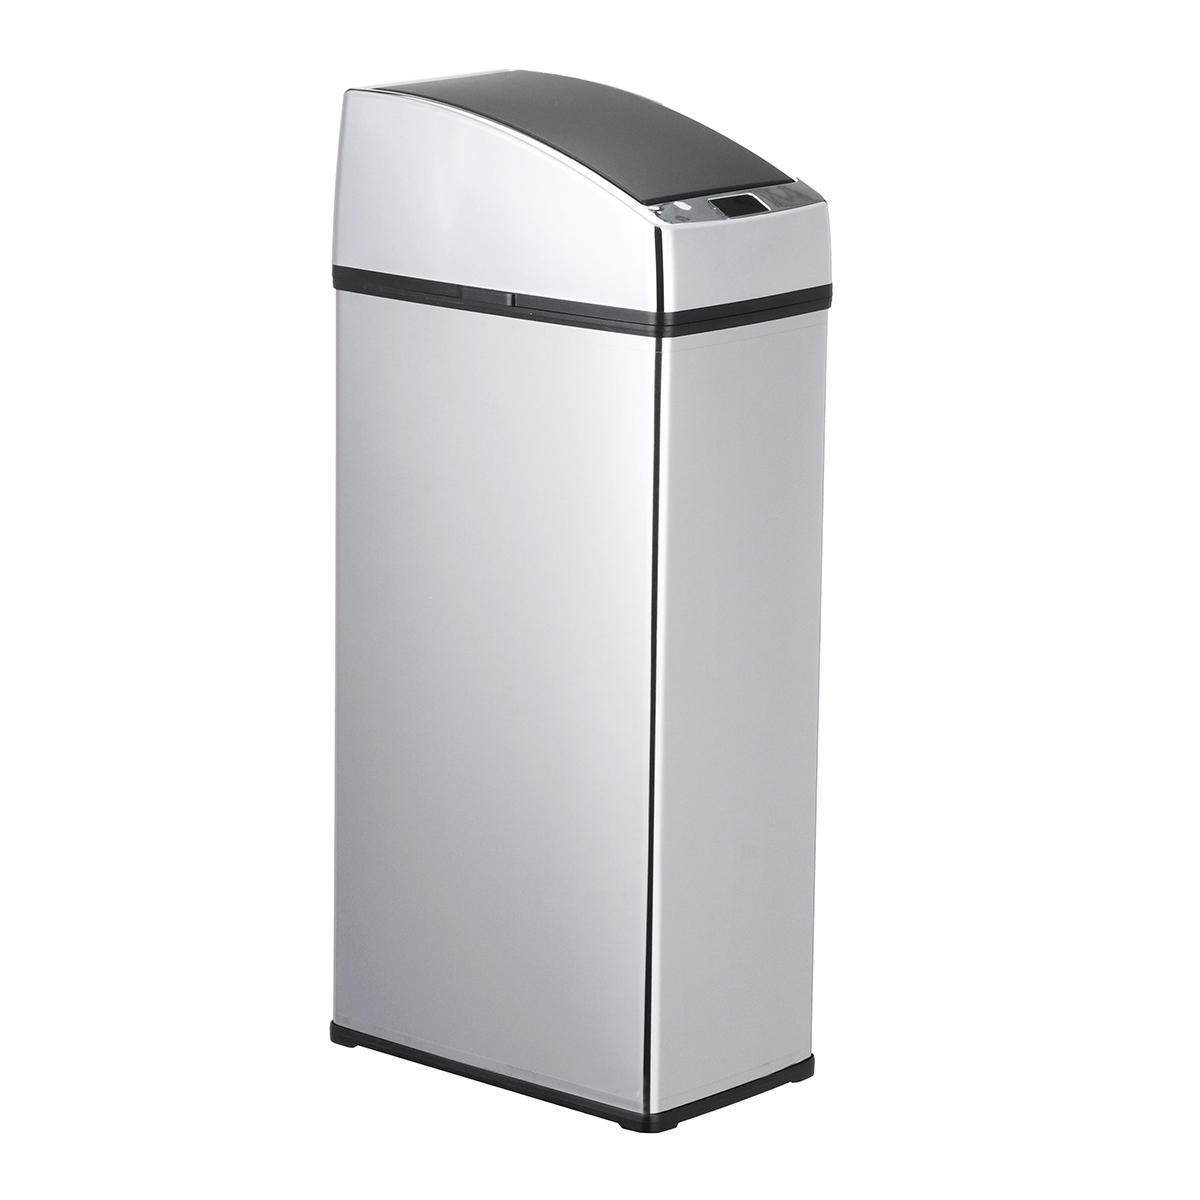 6L Stainless Steel Touch Free Sensor Automatic Touchless Trash Can Kitchen  Office Waste Bins